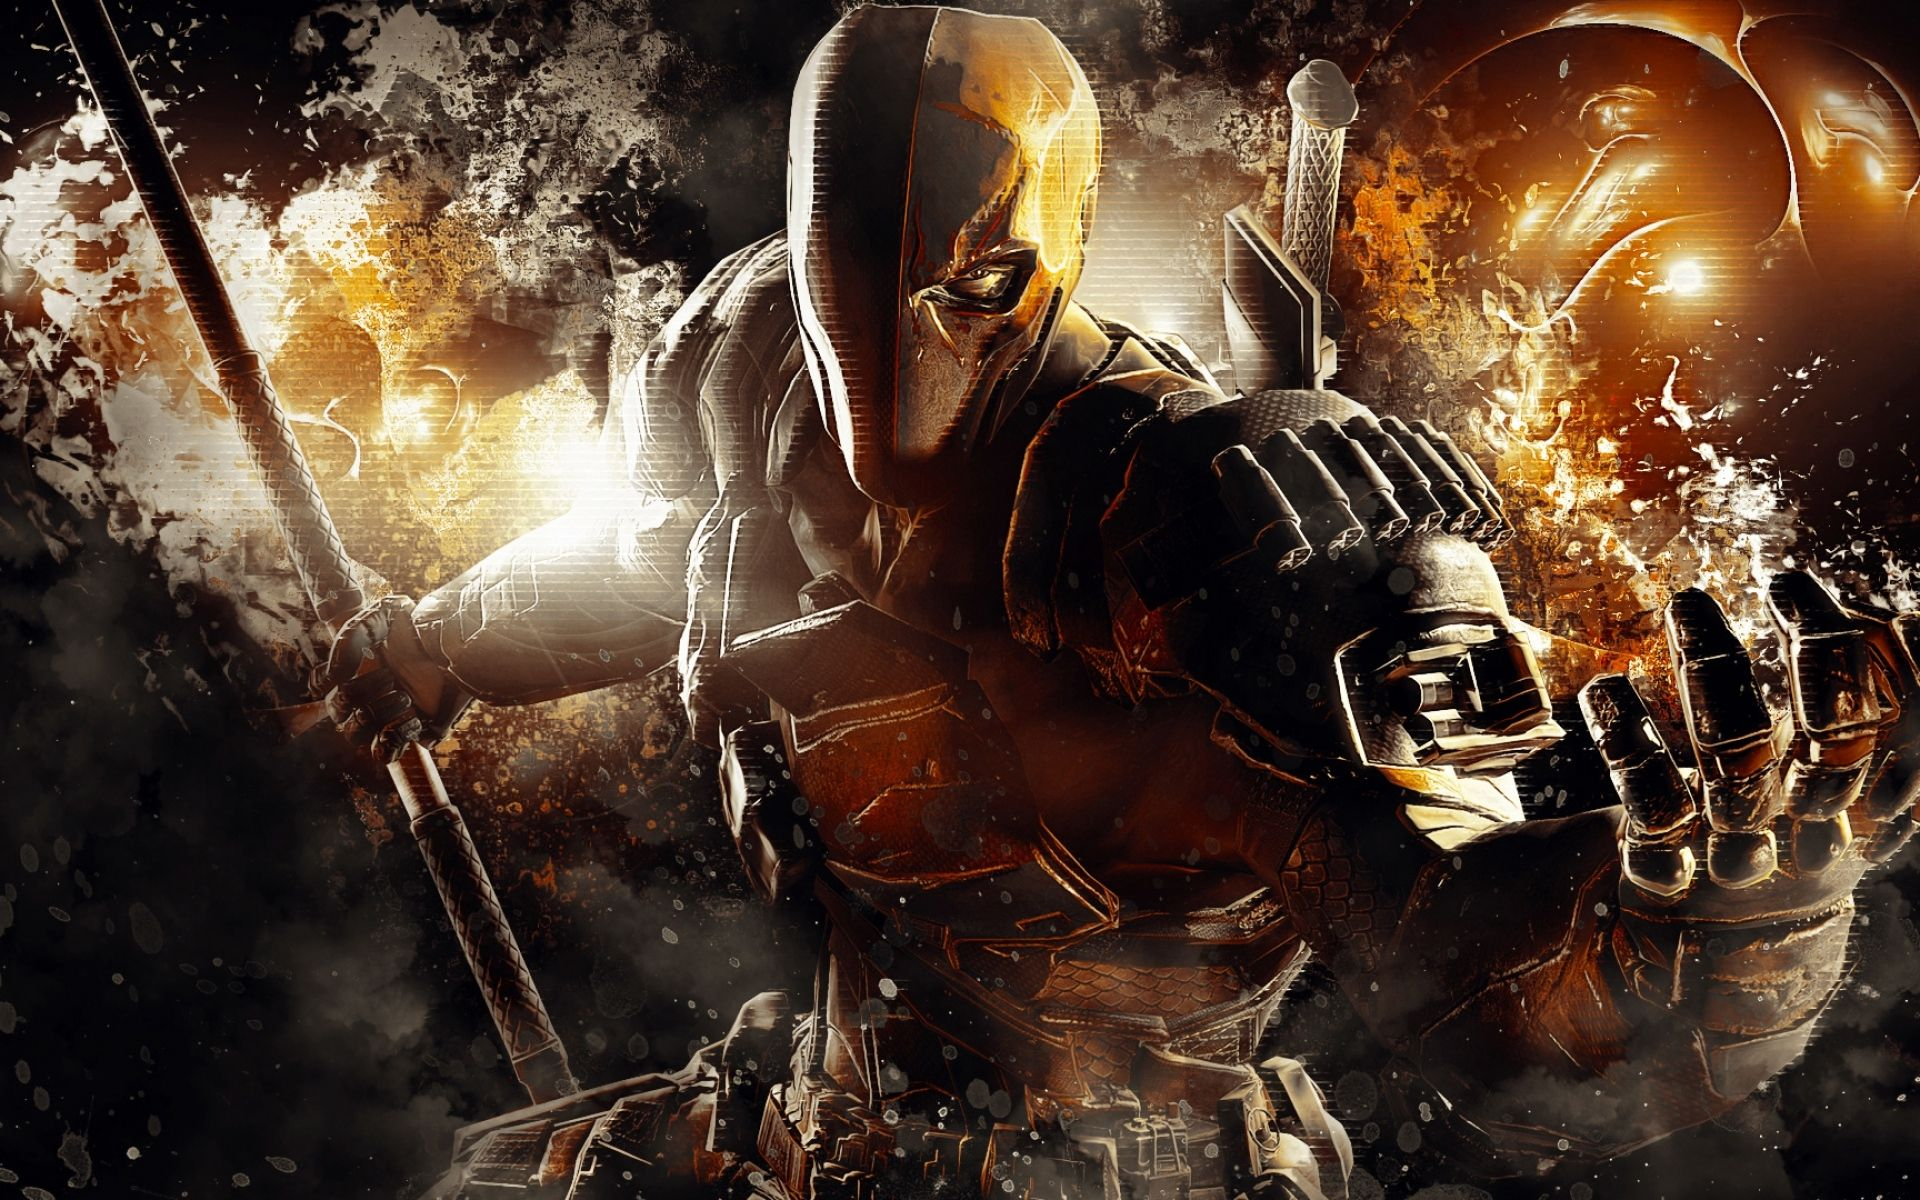 Cool Backgrounds Video Games Lastest With Images 4k Gaming